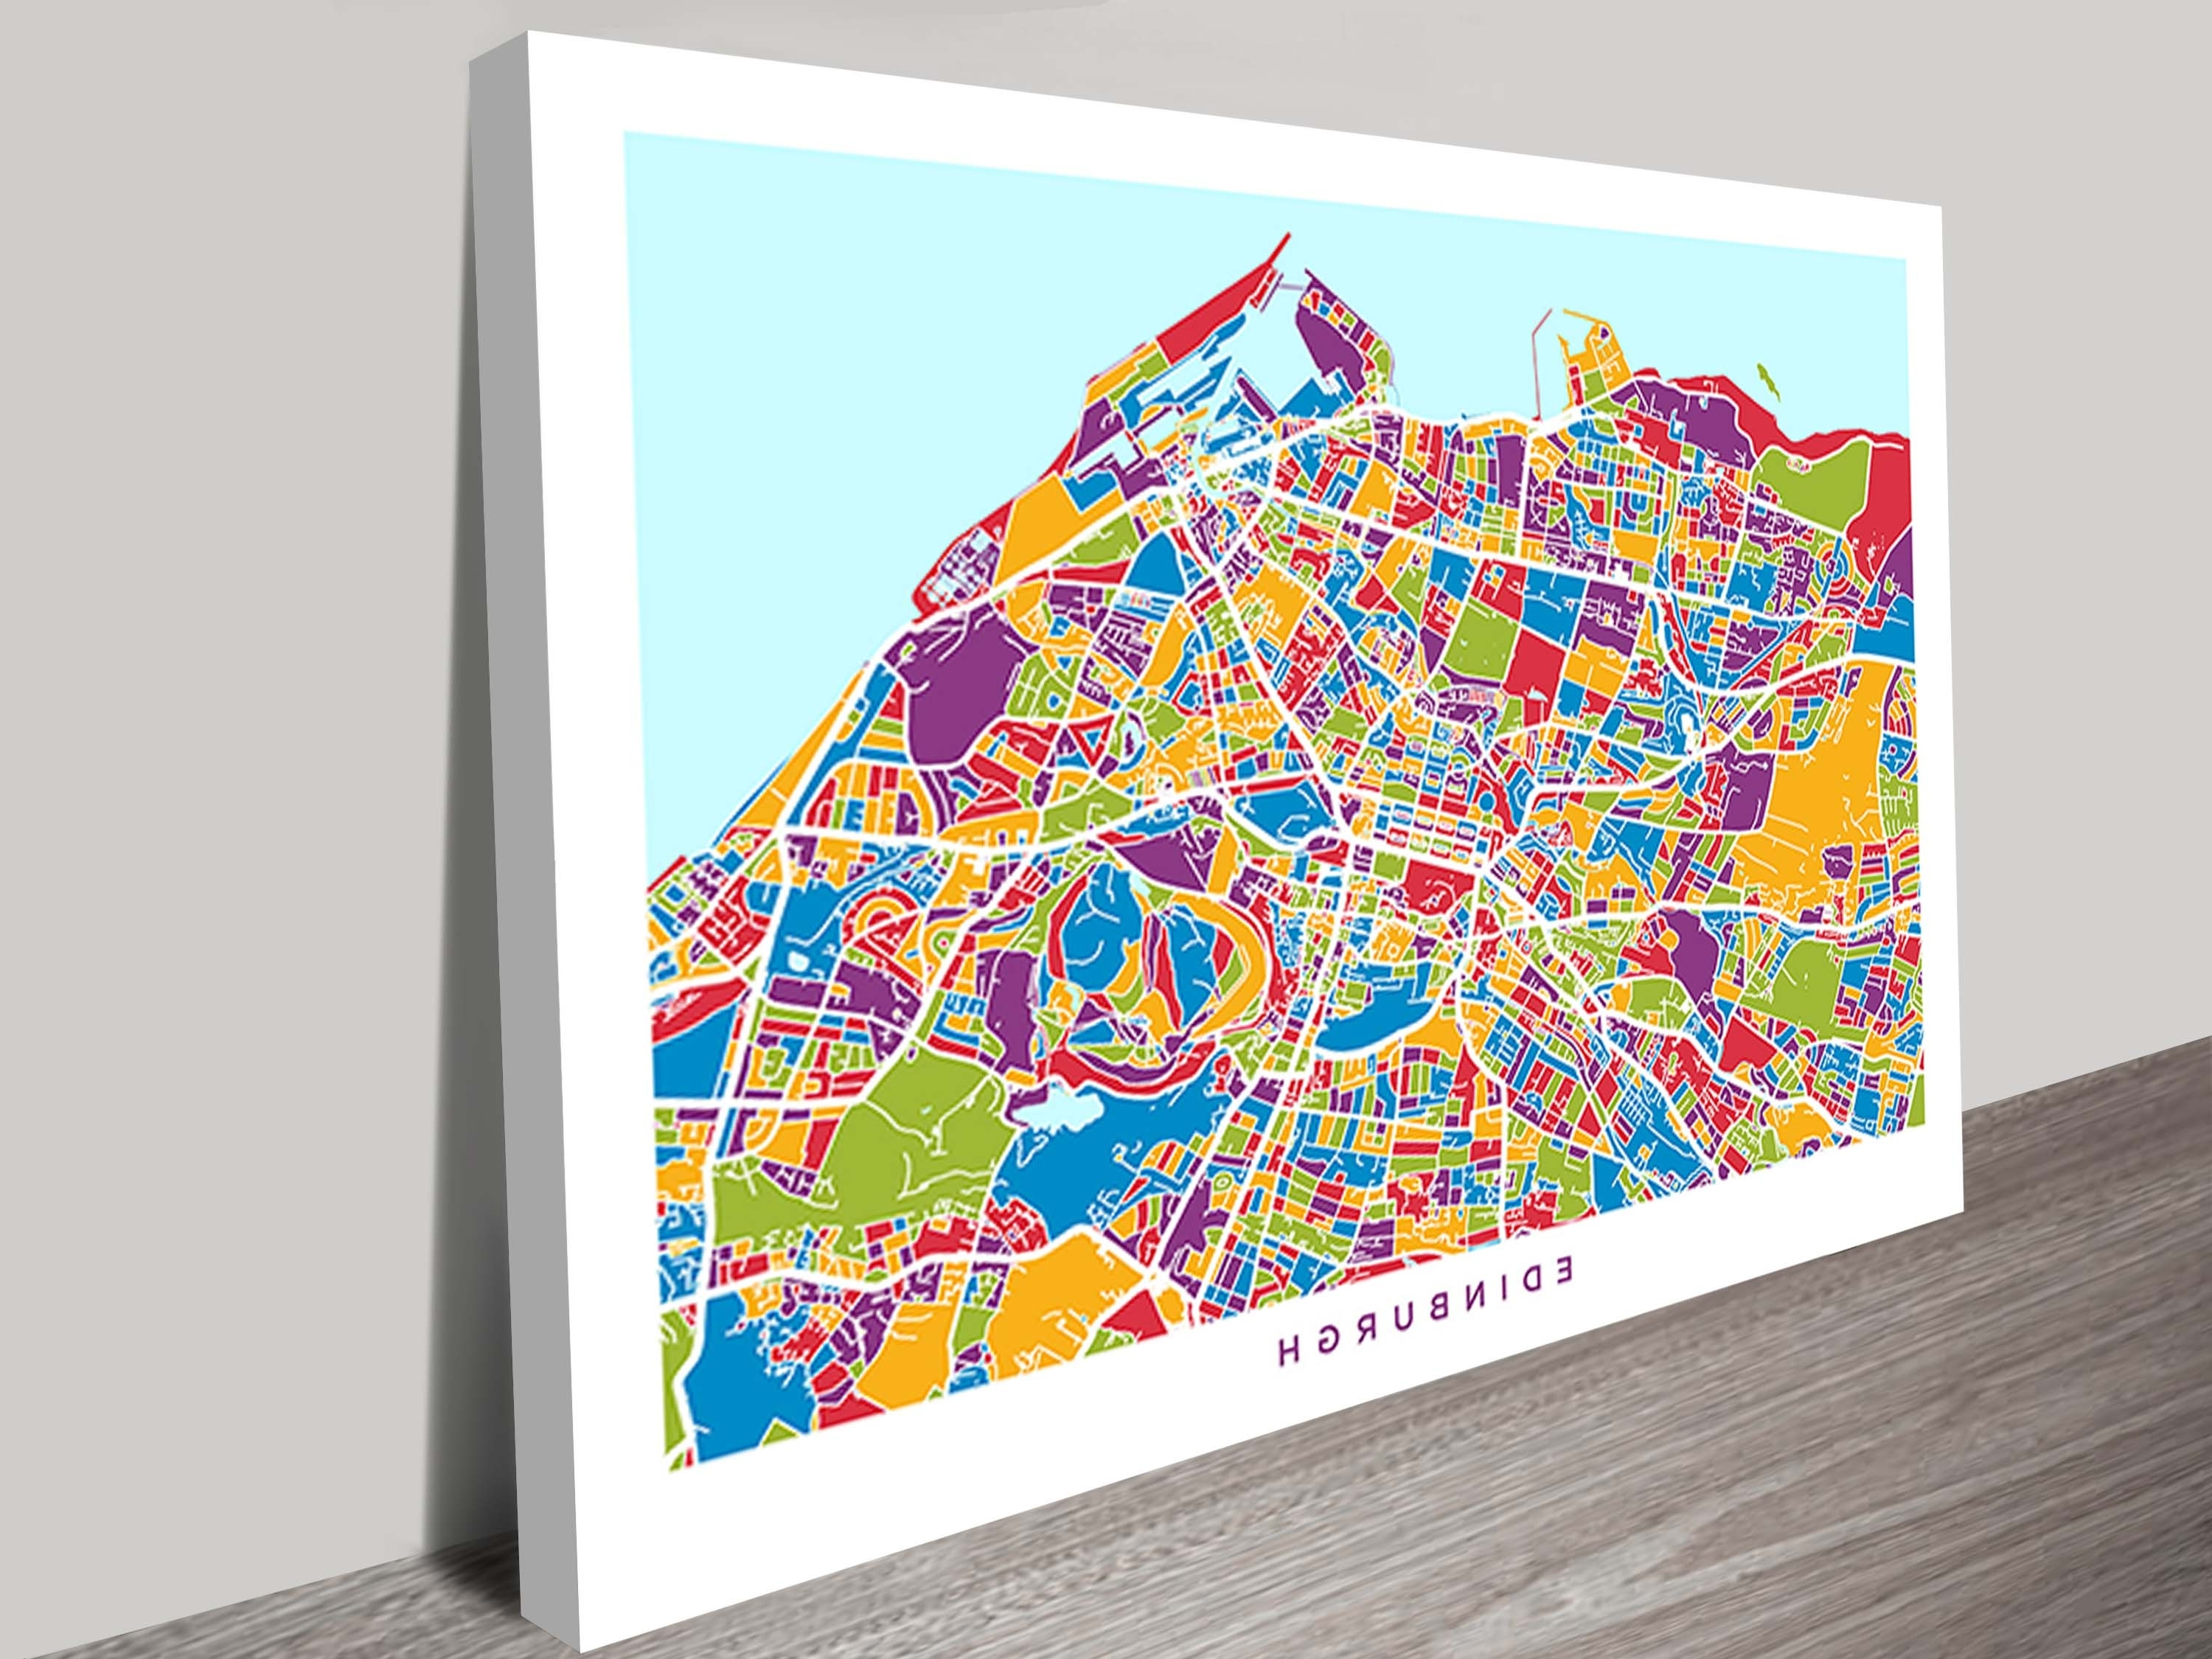 Favorite Edinburgh, Scotland Street Map Canvas Artmichael Tompsett With Edinburgh Canvas Prints Wall Art (View 9 of 15)